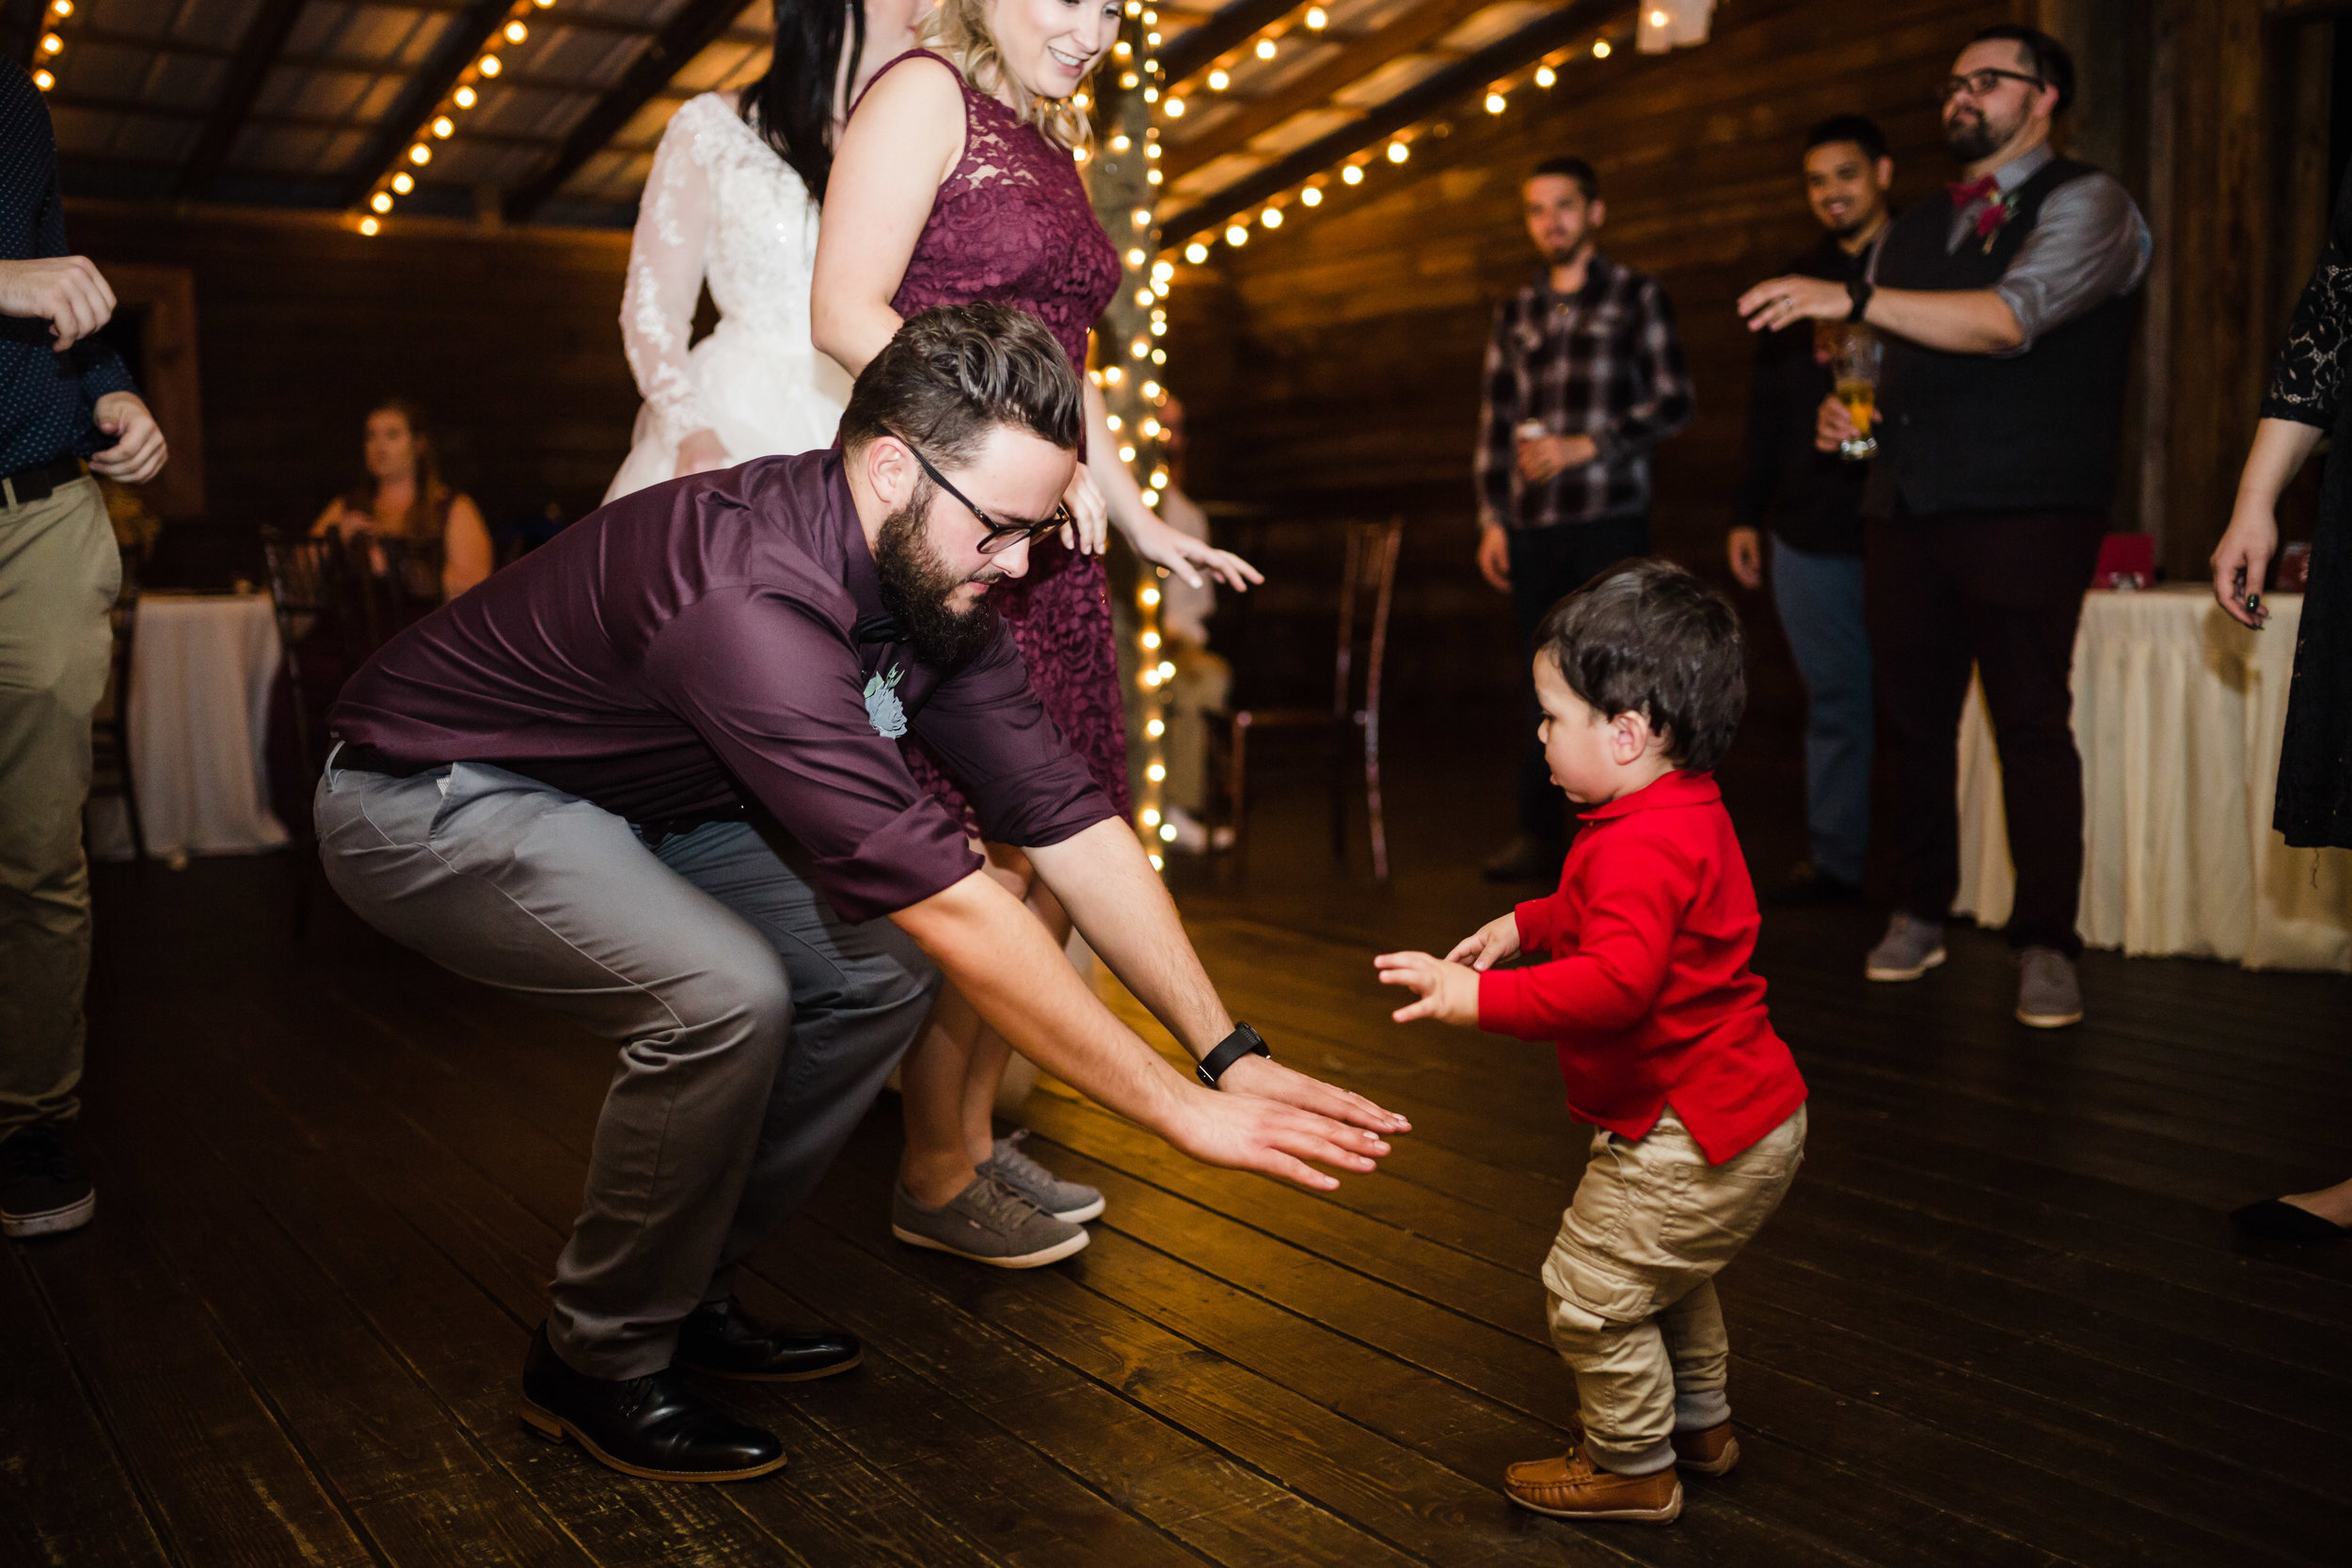 2018.11.11 Paige and TJ Enchanting Barn Wedding (658 of 841).jpg